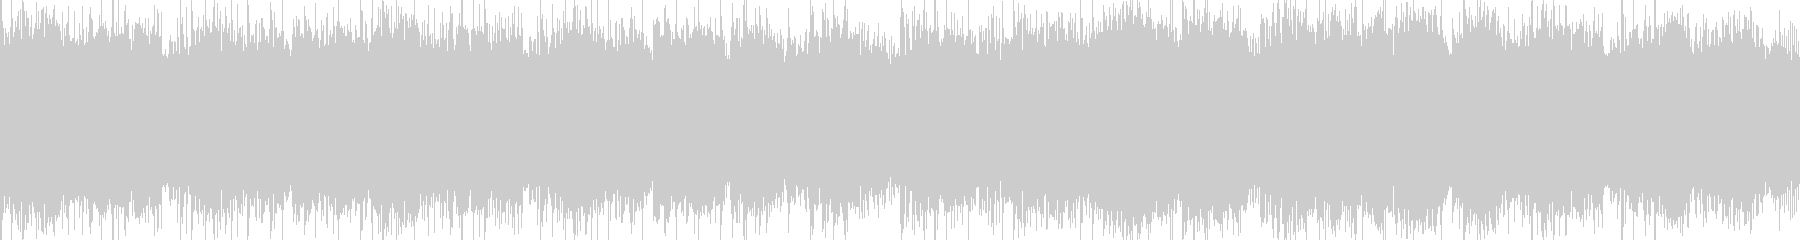 Ruth horror BGM's unreproduced waveform